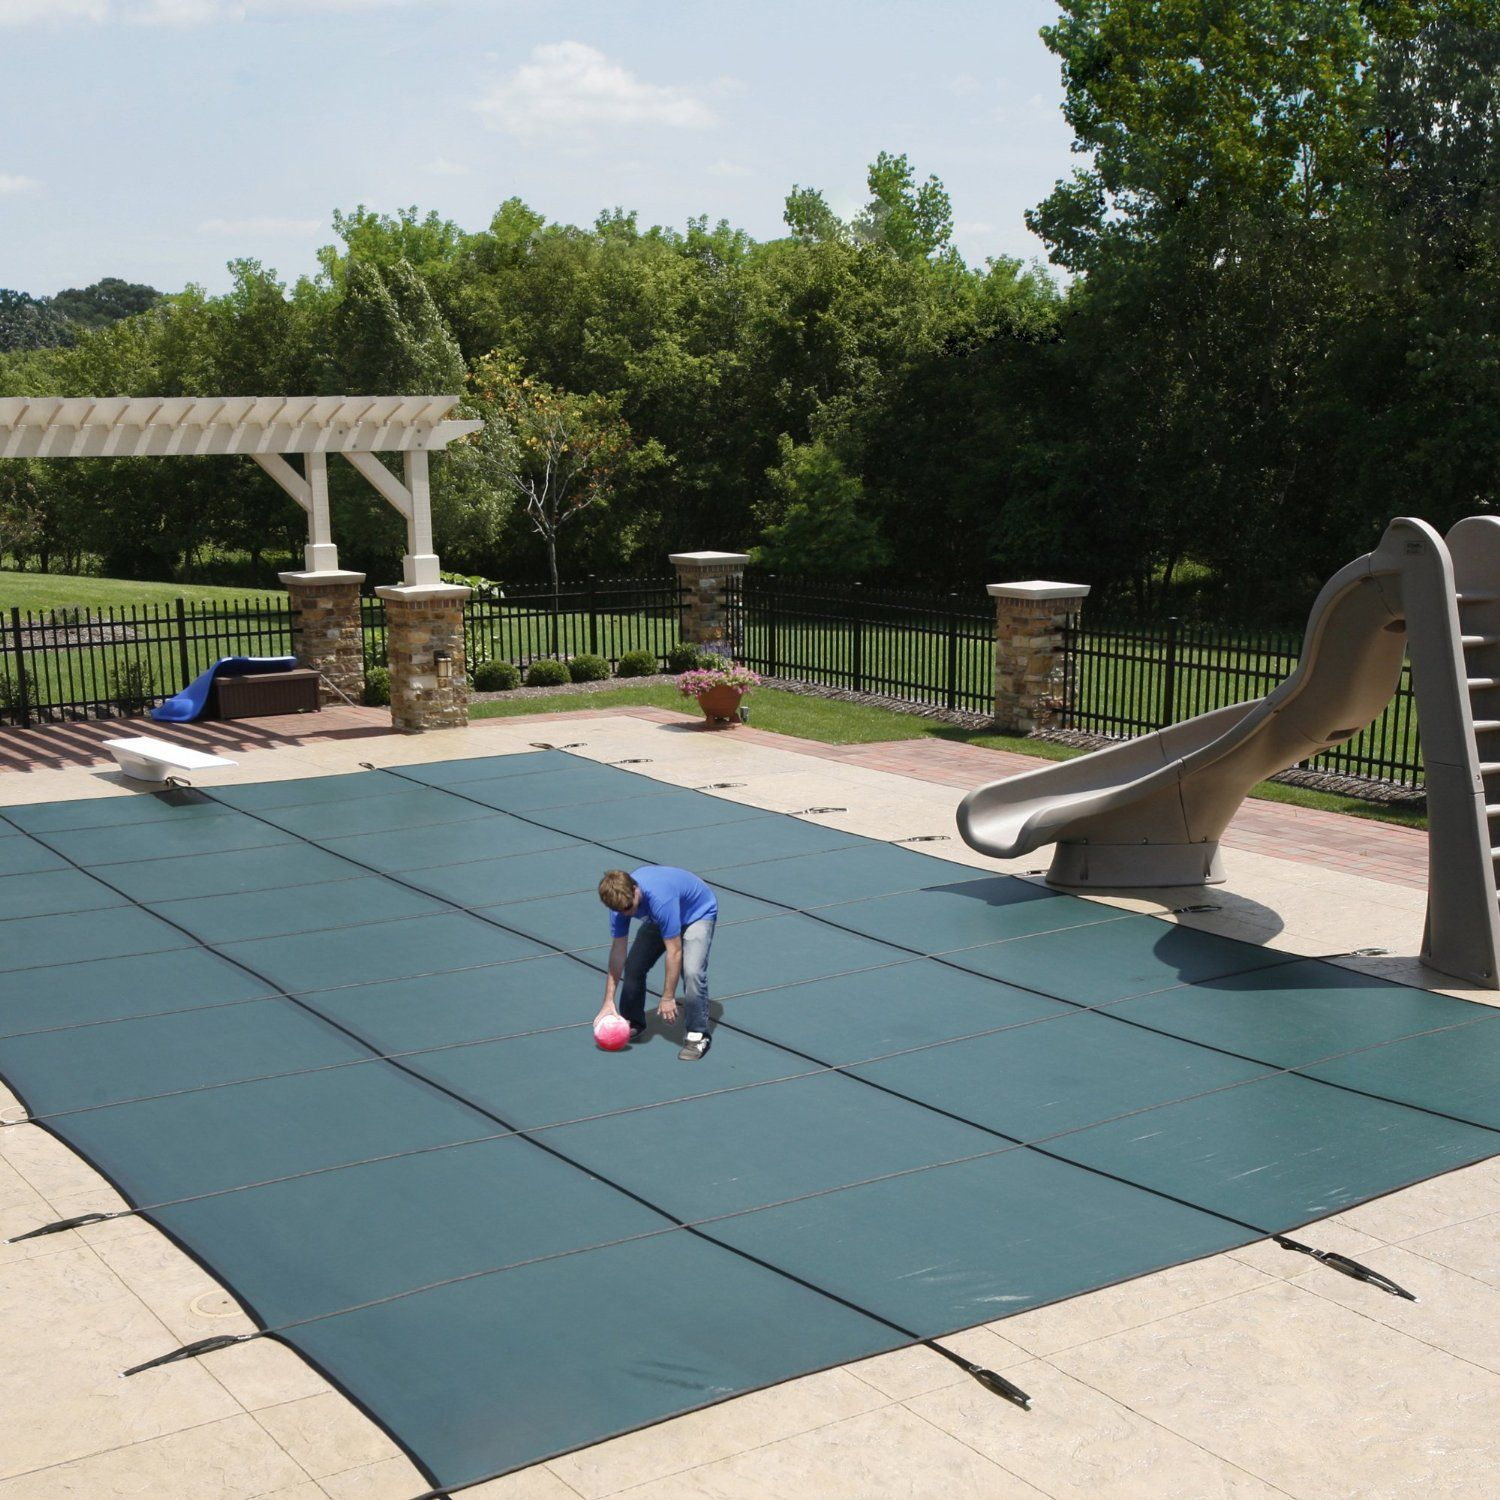 Pool Covers You Can Walk On | I do | Pinterest | Swimming pools, Pool  designs and Pool houses